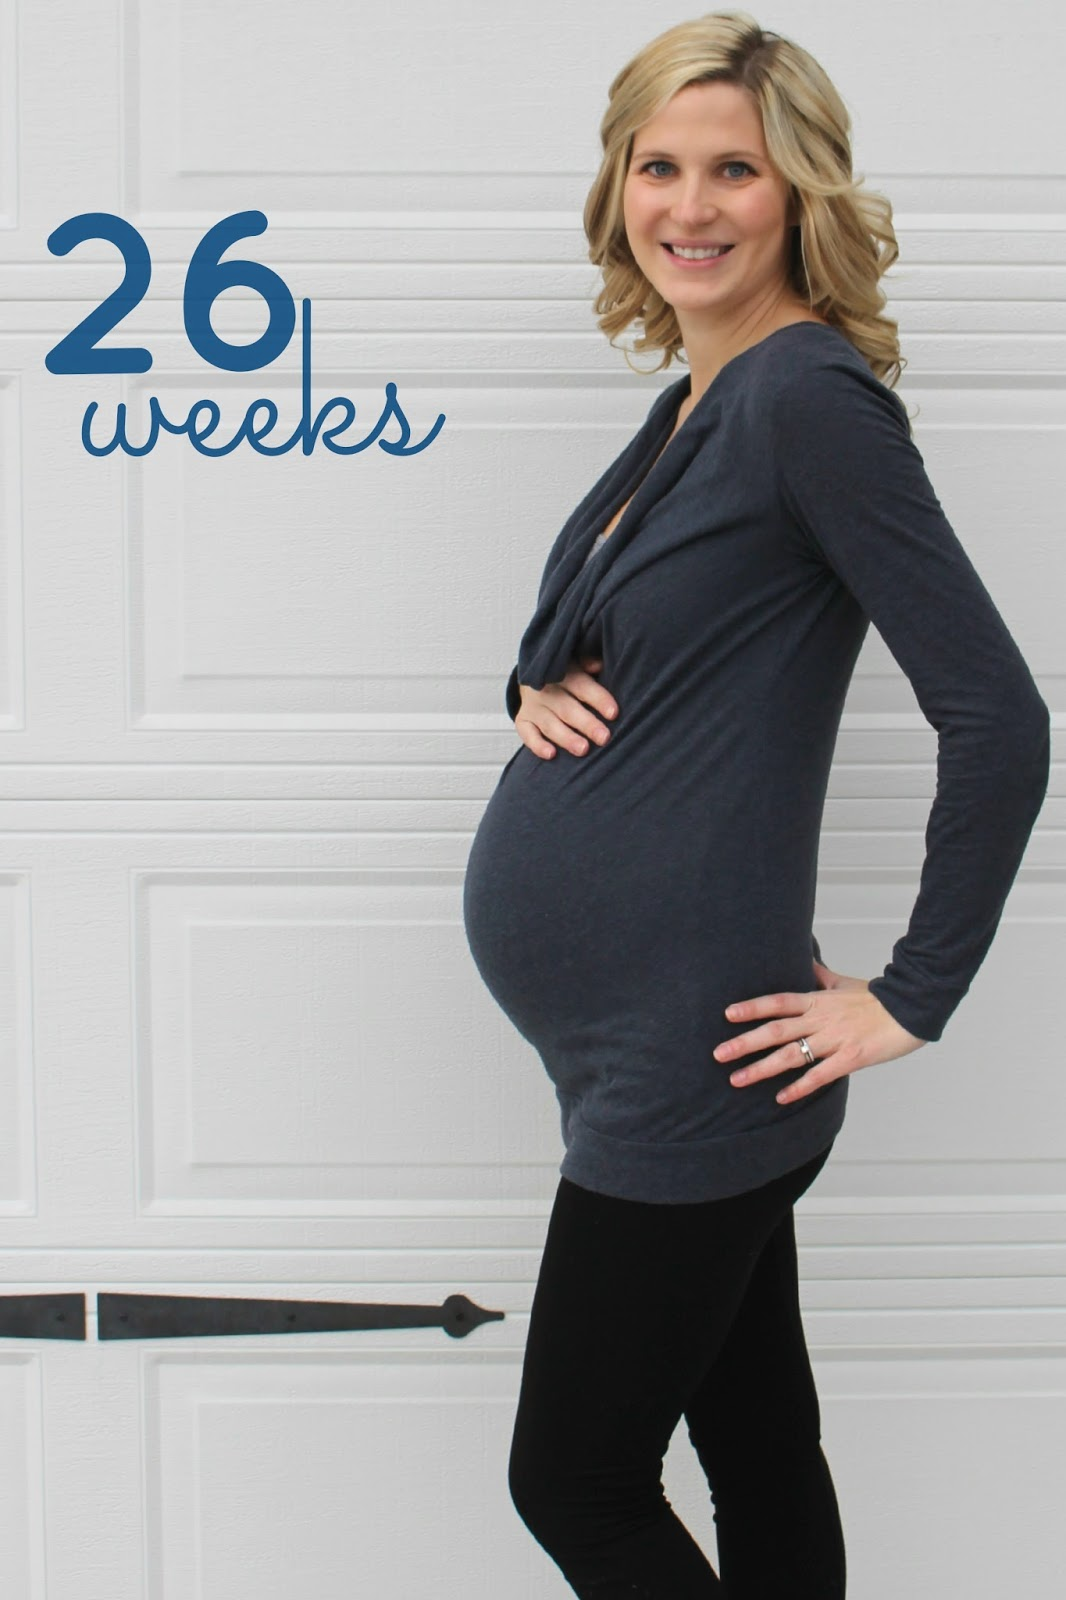 Average weight gain at 26 weeks pregnant helpful information